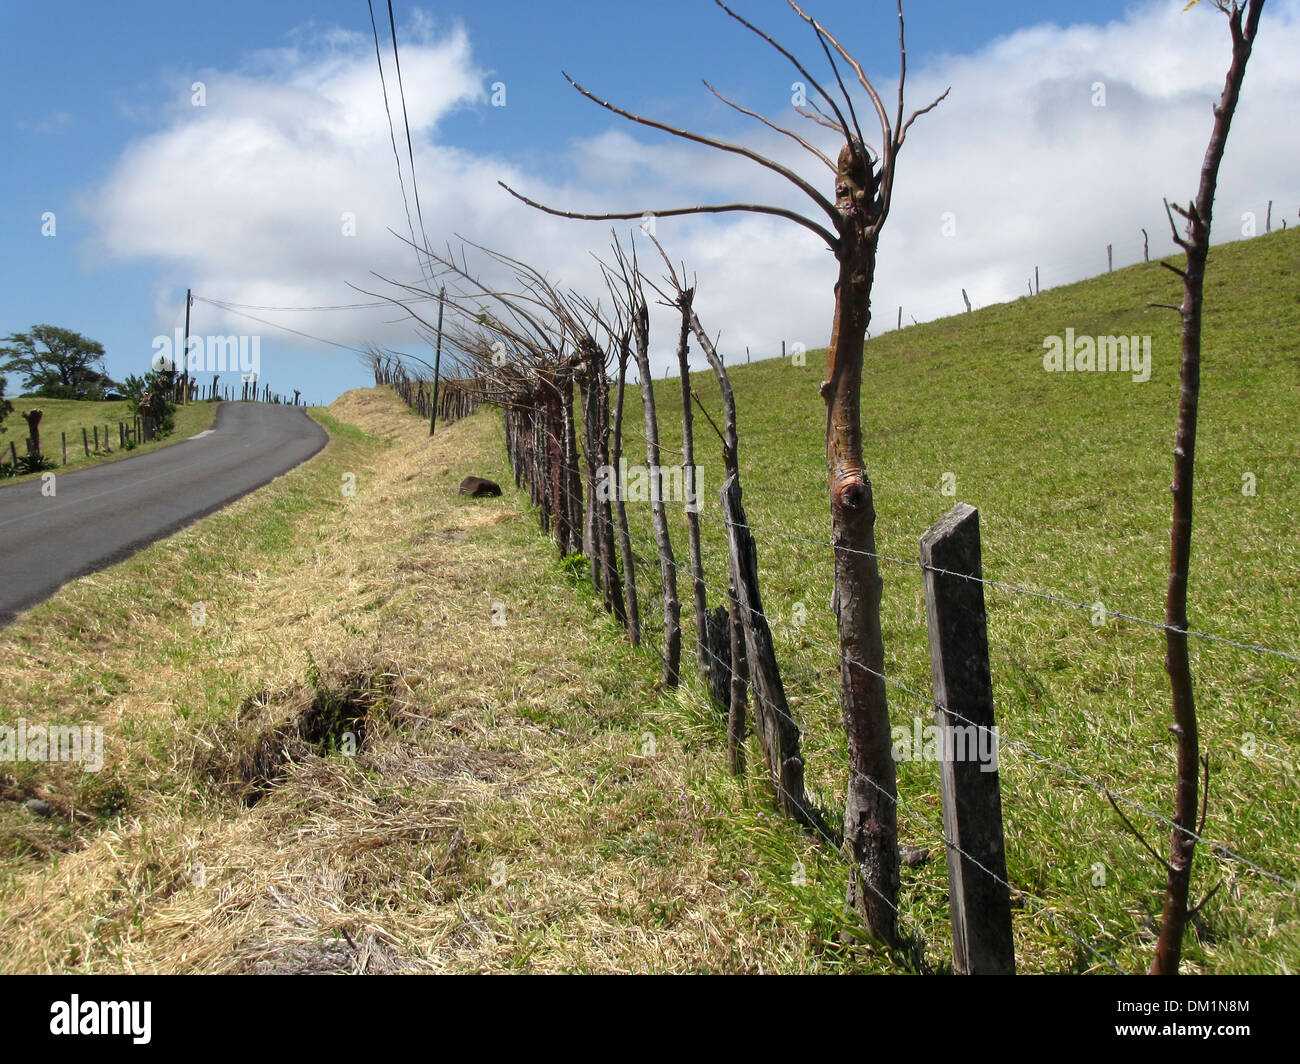 A living fence made of a mixture of posts and live trees protects a farm field, this one in Costa Rica. - Stock Image